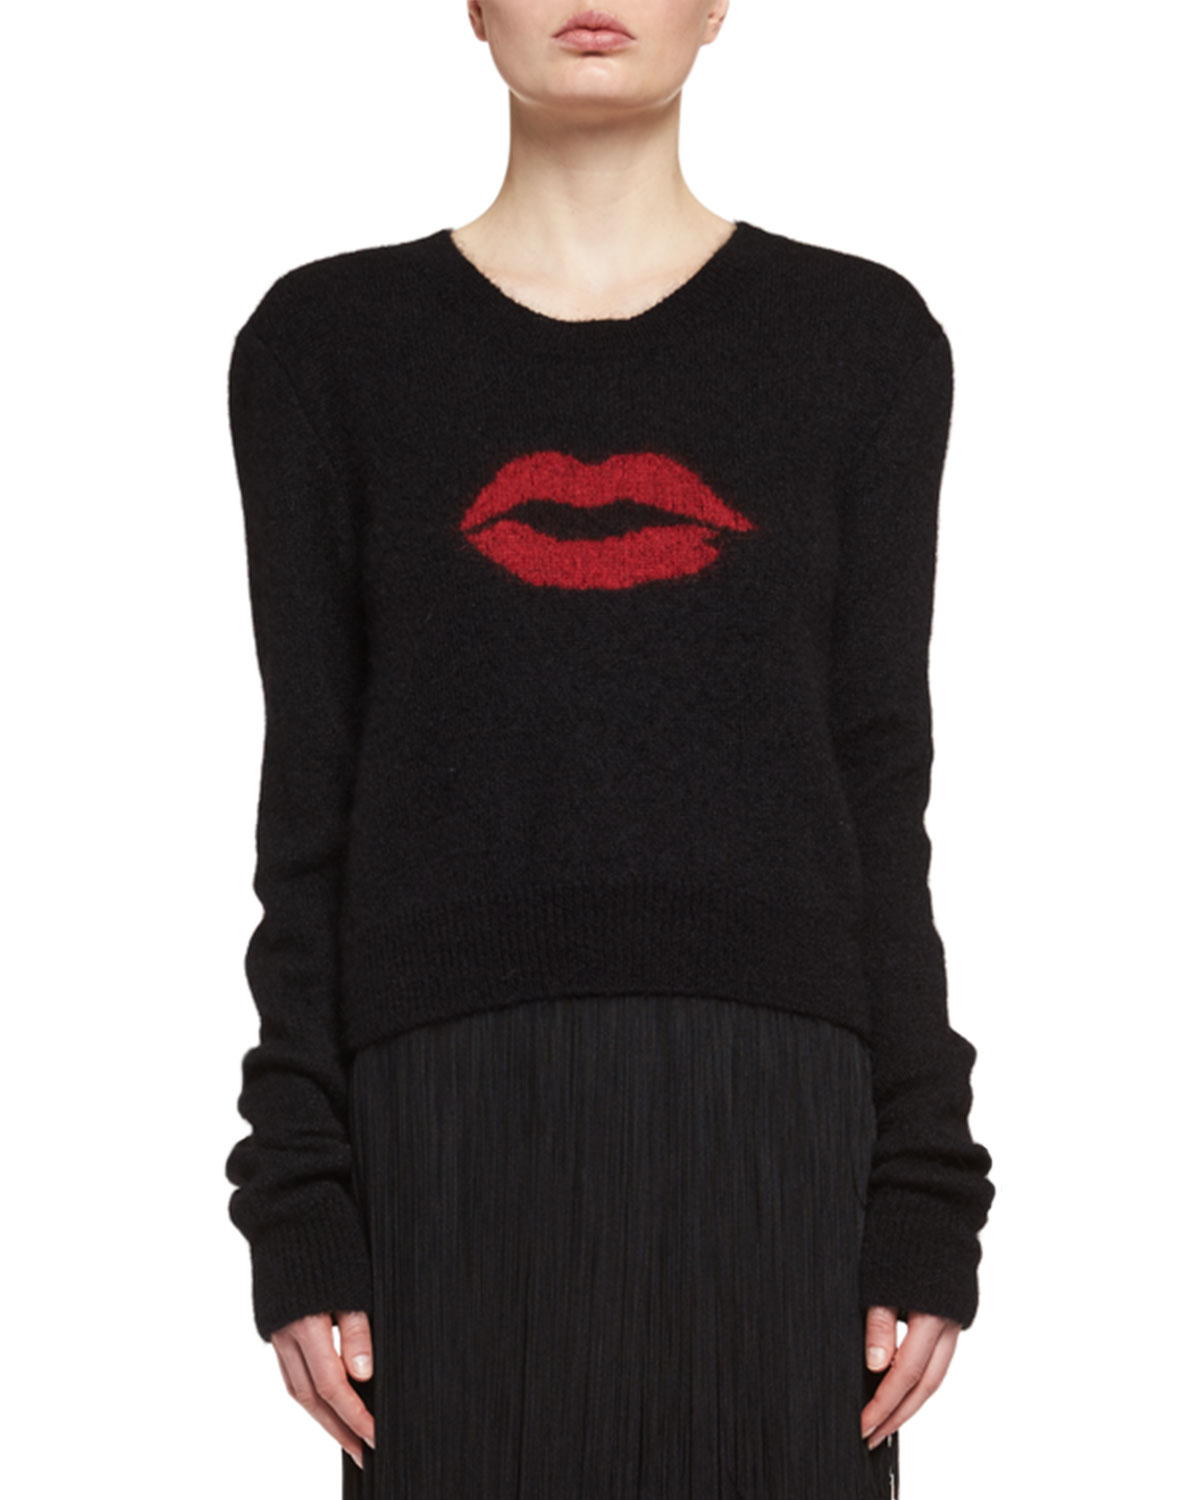 Lips Mohair Crewneck Sweater